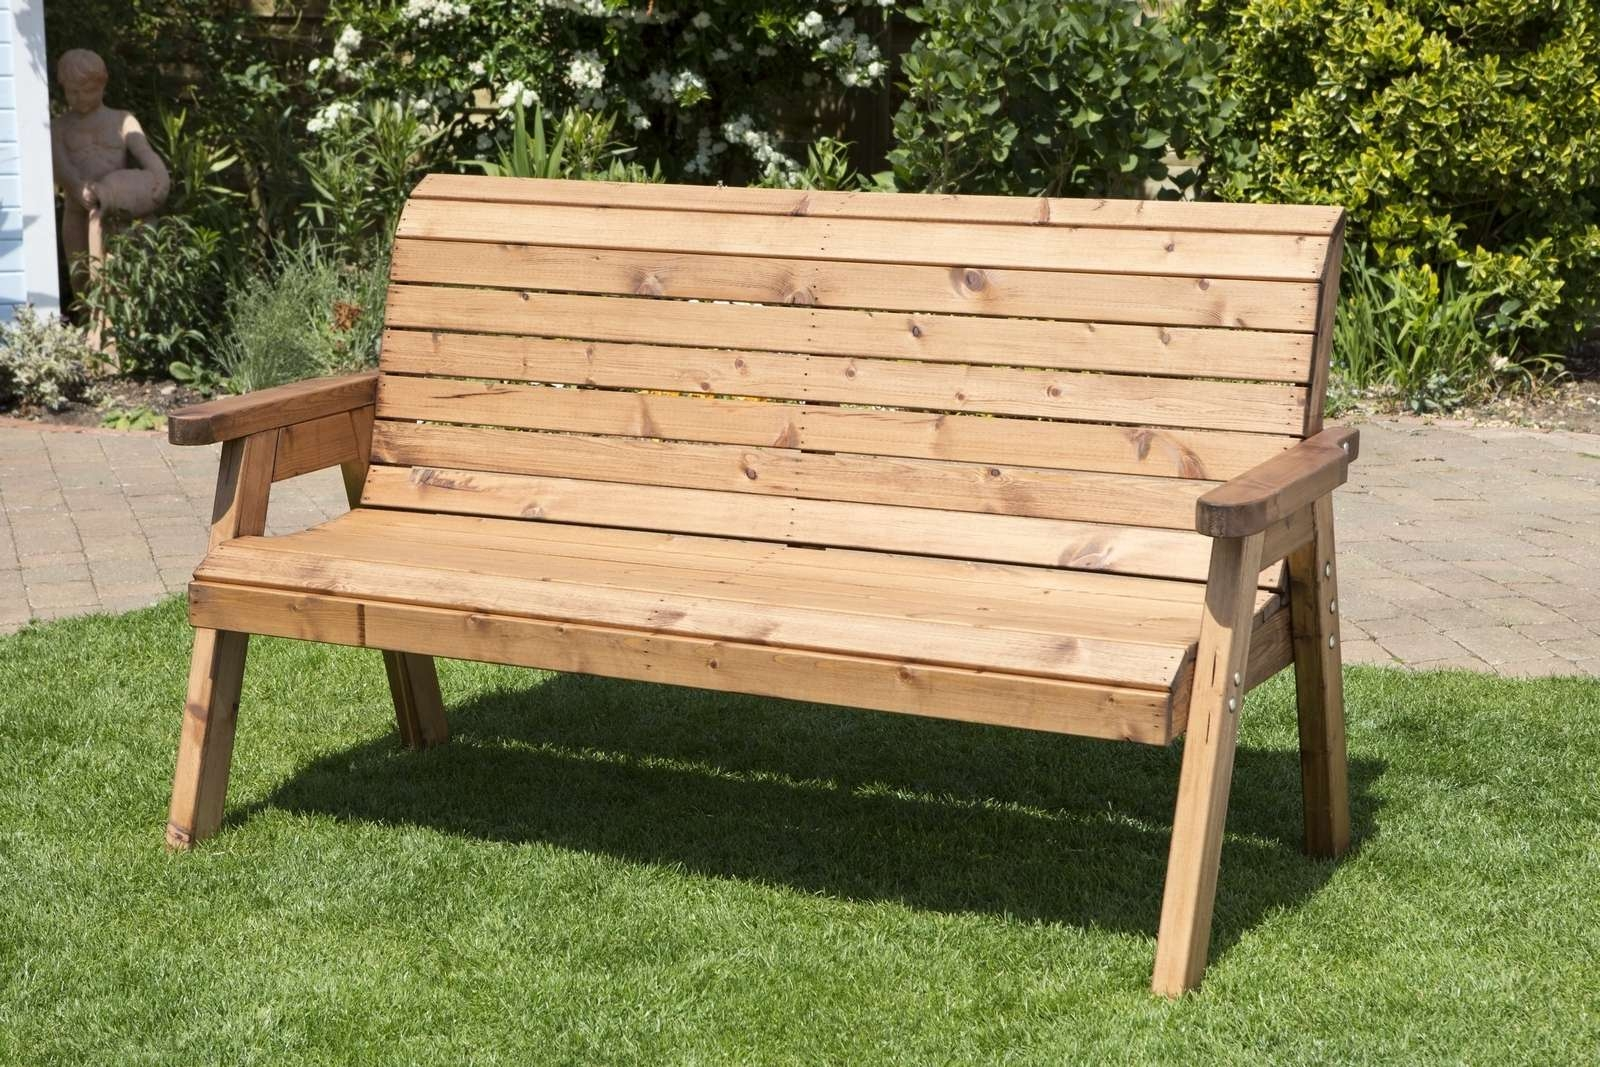 Uk Made Fully Assembled Heavy Duty Wooden Garden Companion Seat In Well Known Wooden Garden Coffee Tables (View 18 of 20)